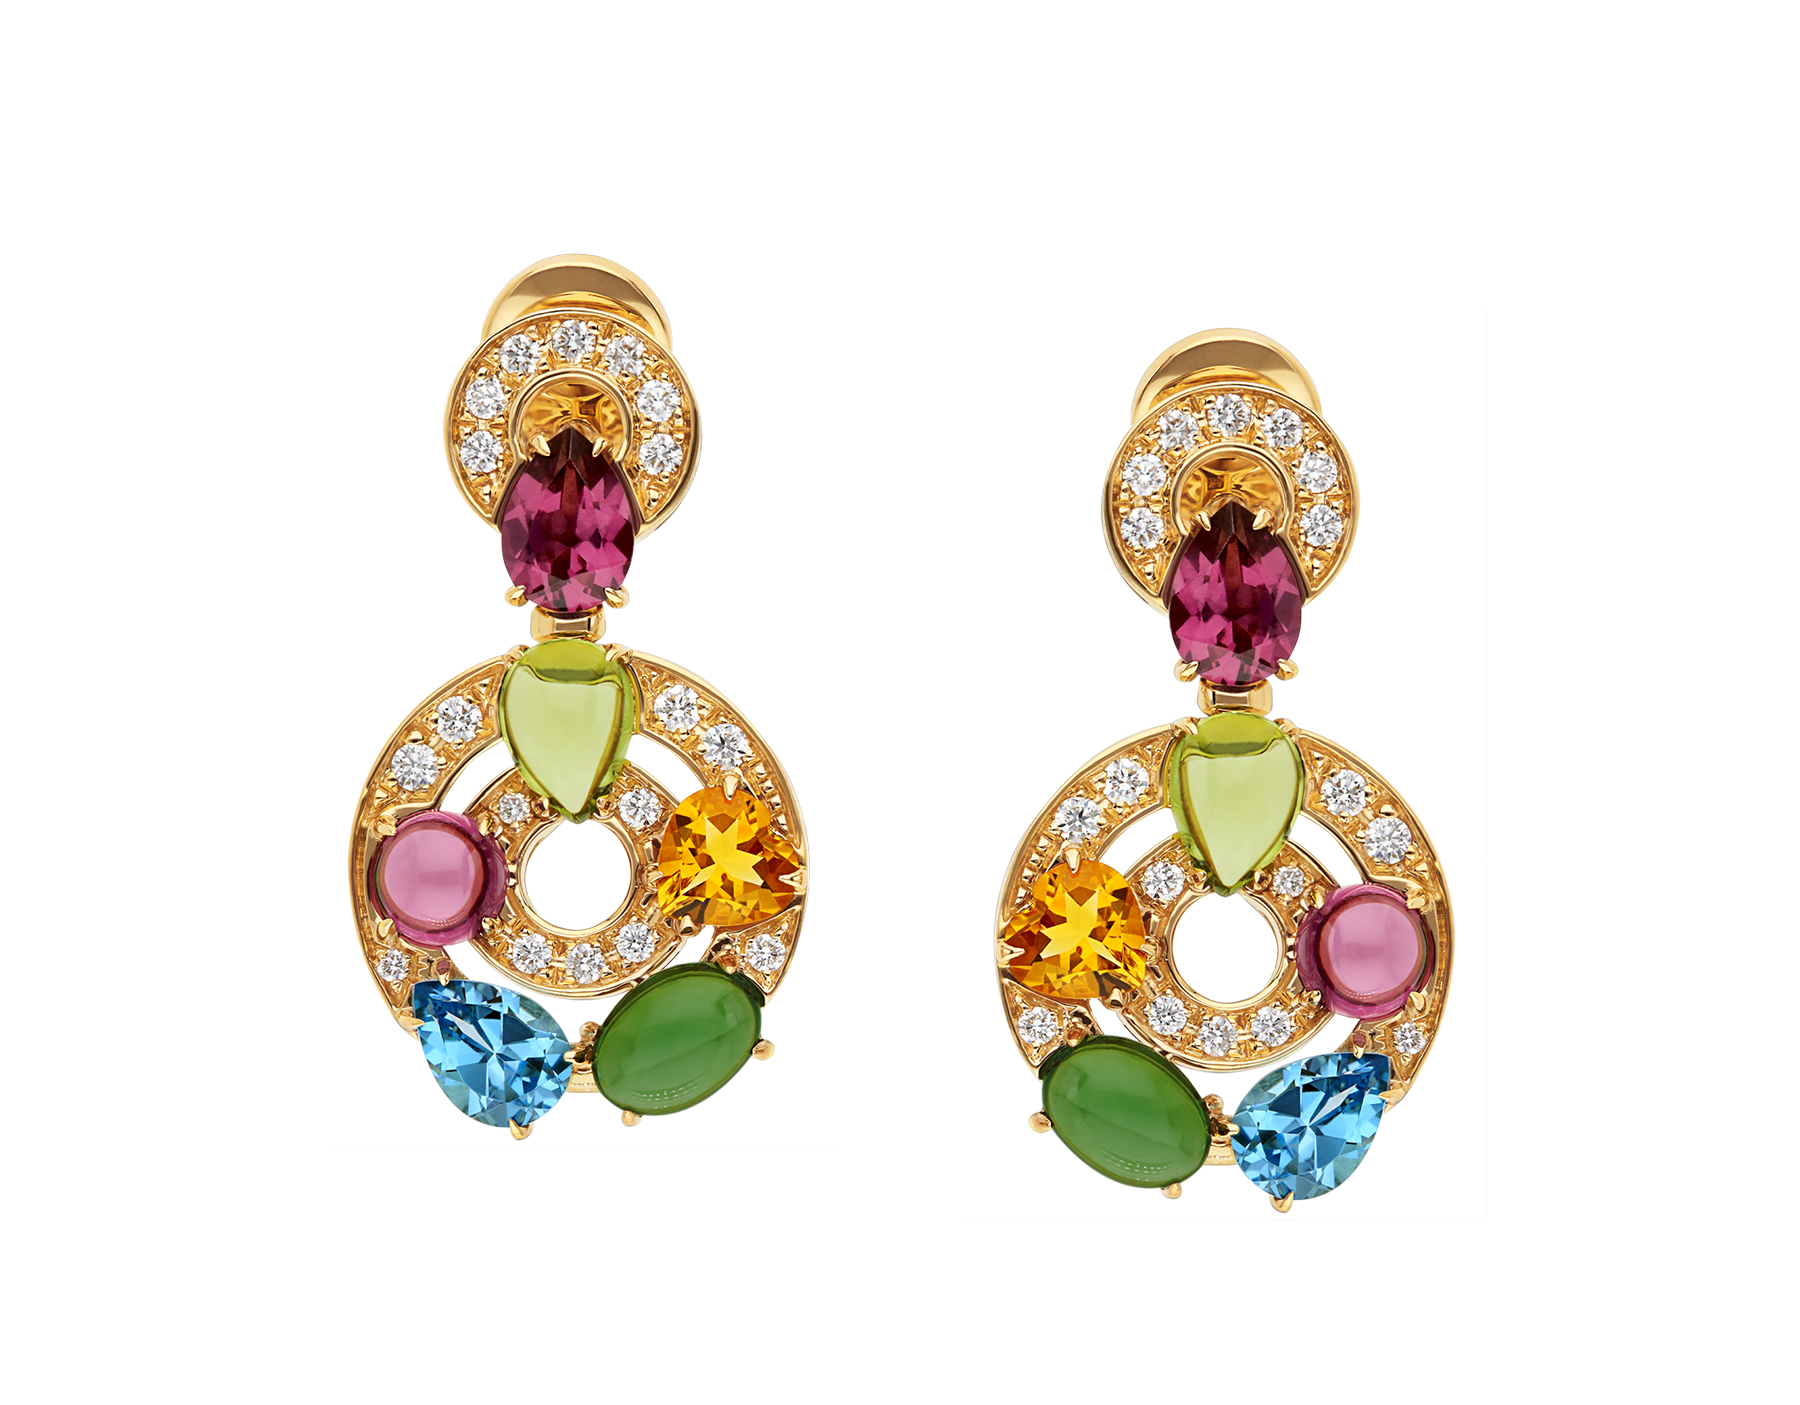 Cerchi 18kt yellow gold earrings set with blue topazes, green tourmalines, peridots, citrine quartz, rhodolite garnets and pavé diamonds 339141 image 1